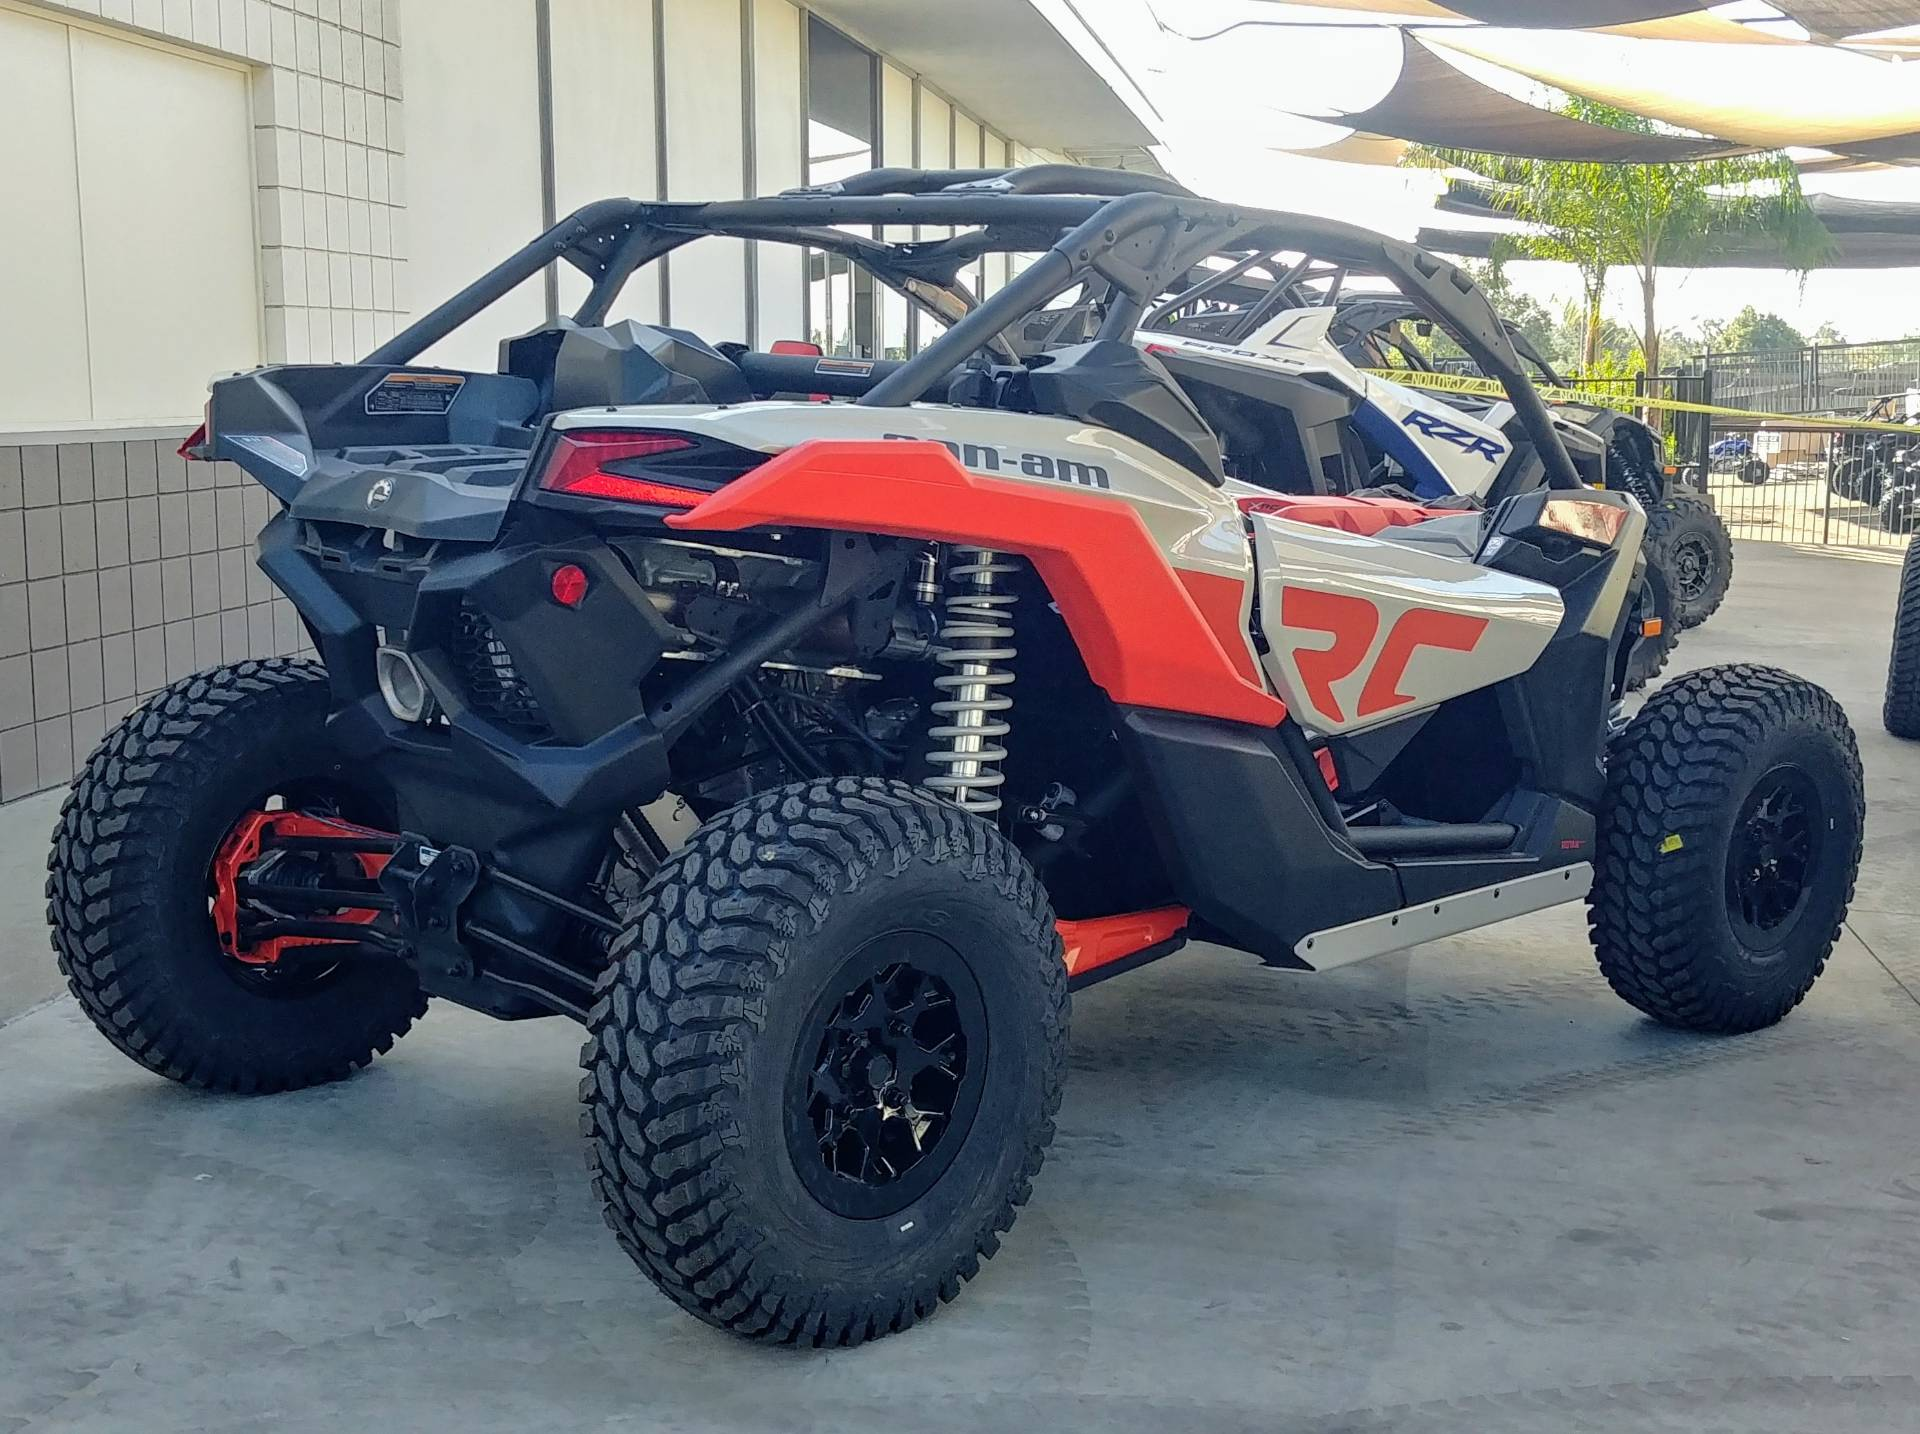 2021 Can-Am Maverick X3 X RC Turbo in Ontario, California - Photo 8